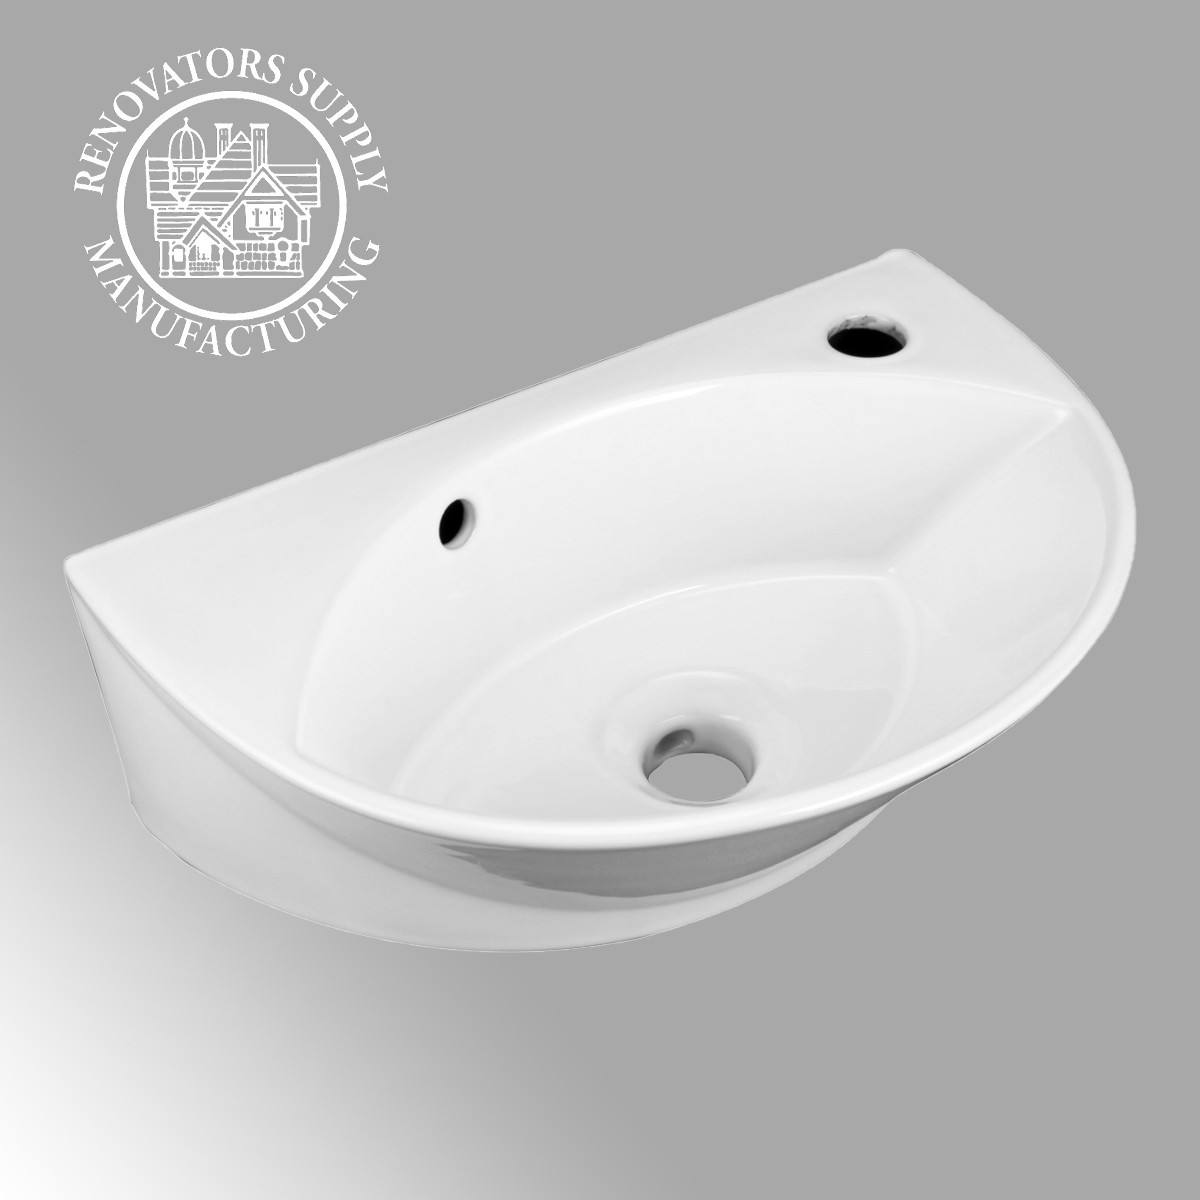 Small White Wall Mount Bathroom Vessel Sink With Single Faucet Hole Overflow